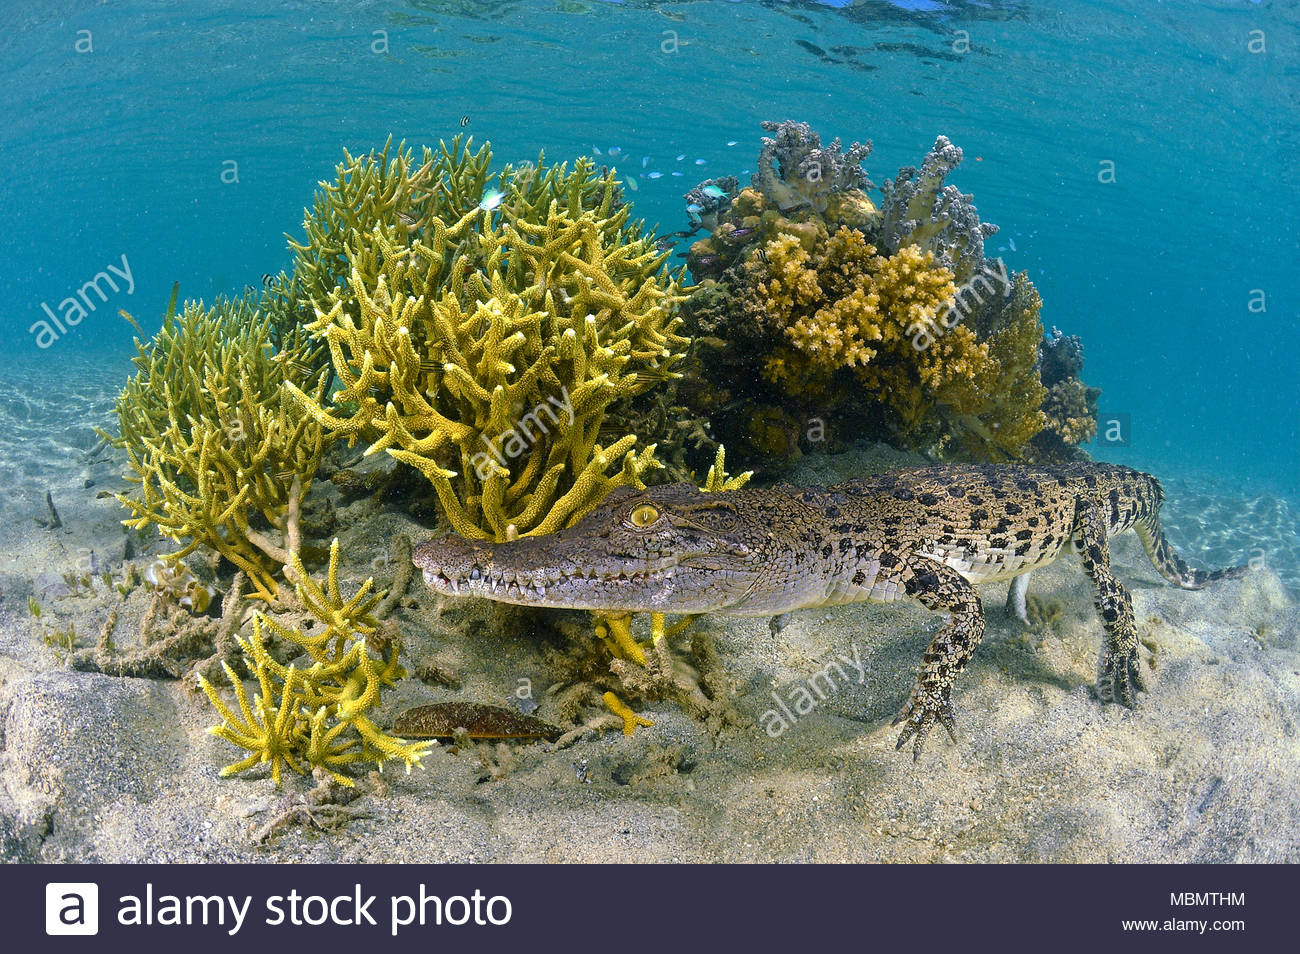 Saltwater crocodile (Crocodylus porosus) at a coral reef, largest of all living reptiles, Kimbe Bay, West New Britain, Papua New Guinea - Stock Image